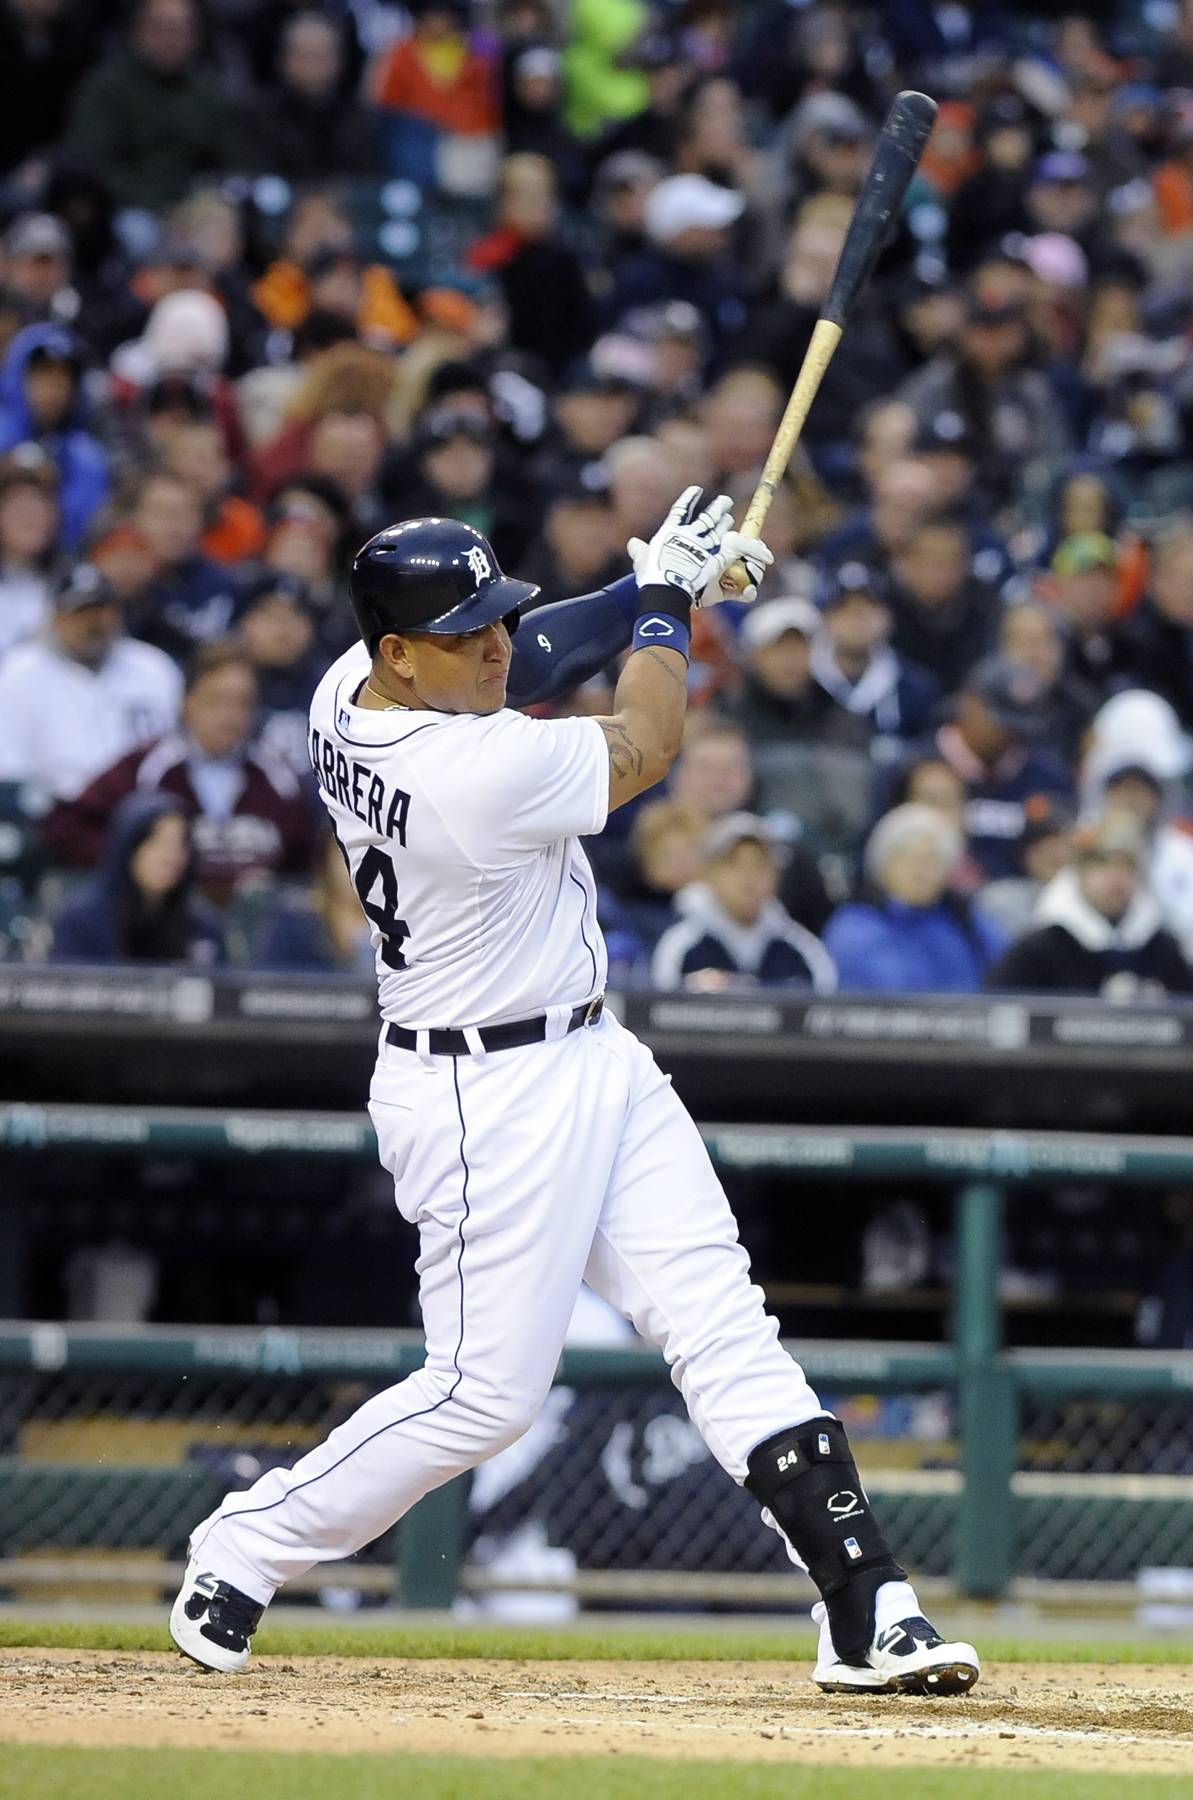 Detroit Tigers' Miguel Cabrera follows through on a two-run home run to right field during the third inning of a baseball game Tuesday against the Chicago White Sox in Detroit.